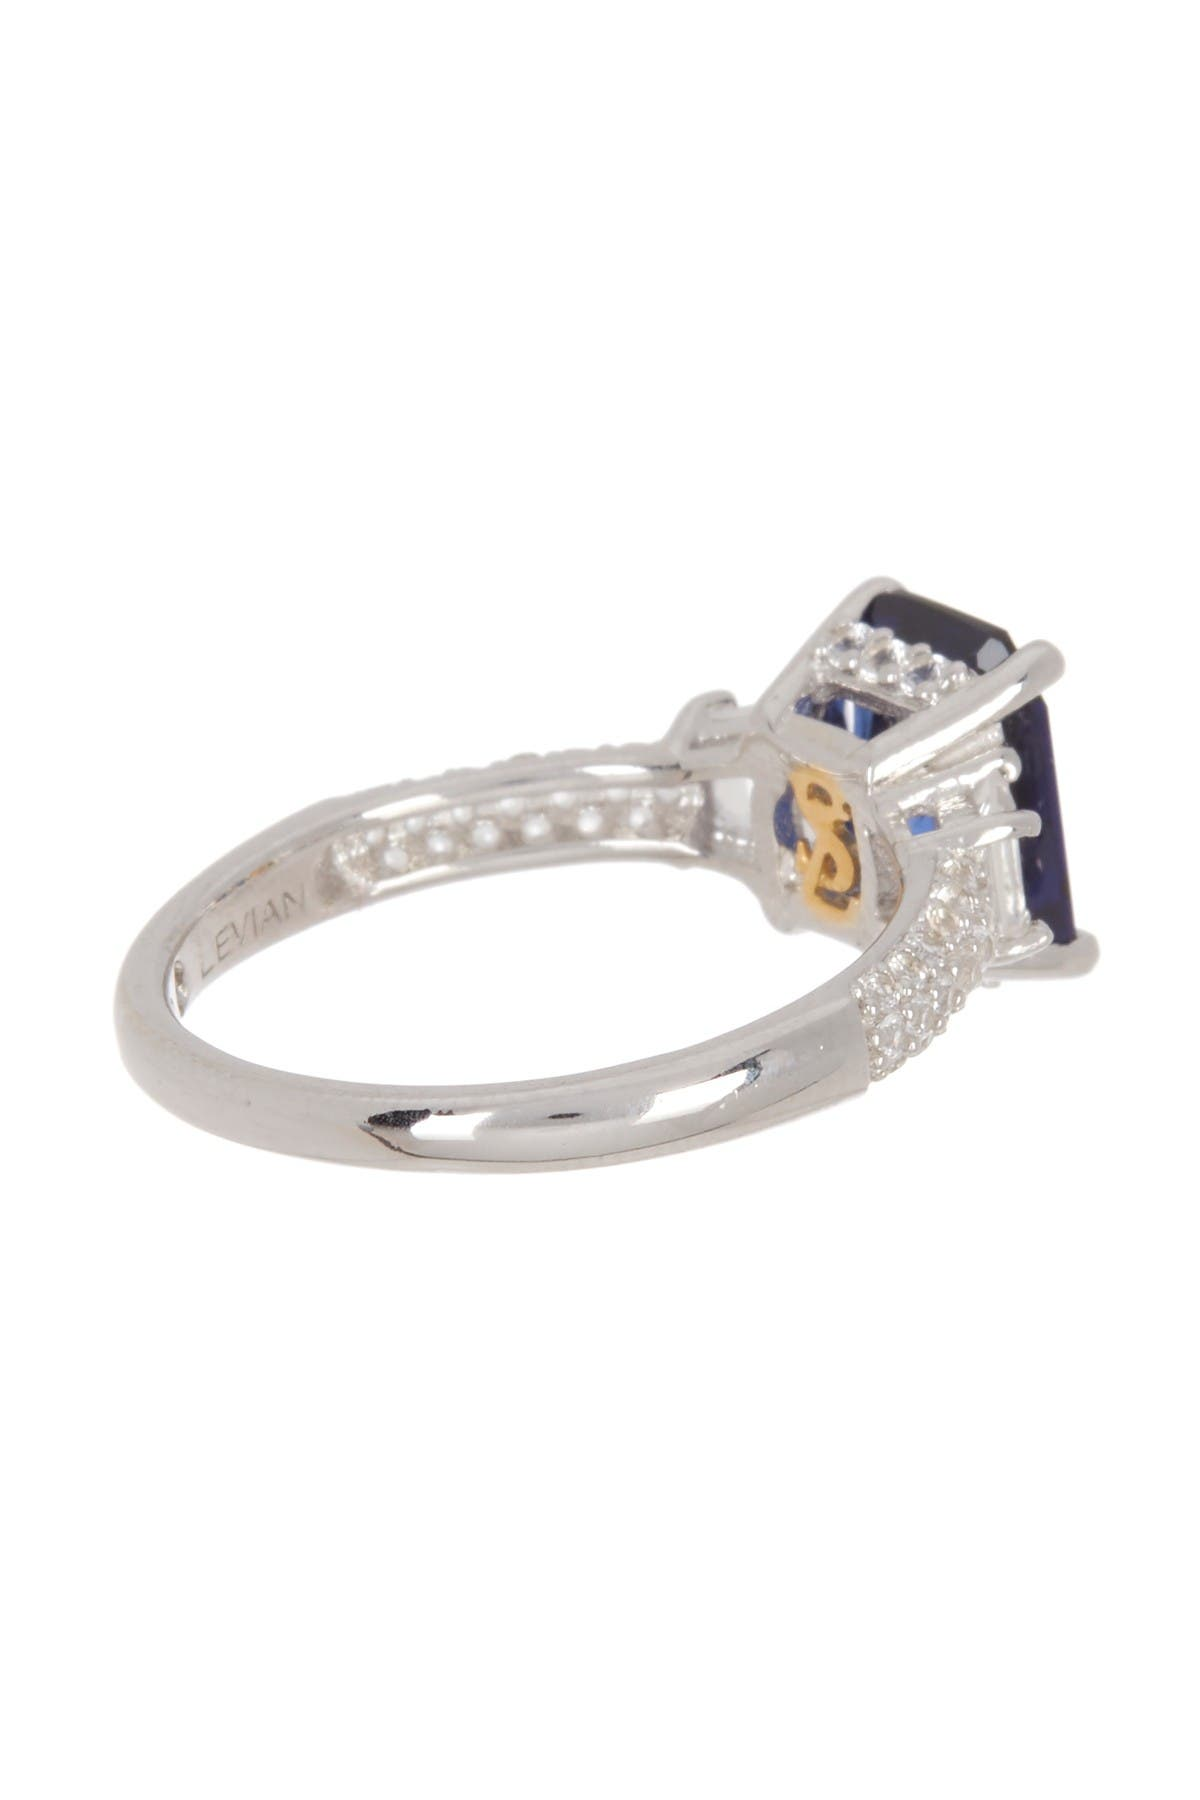 Image of Suzy Levian Sterling Silver Rectangular Sapphire Diamond Accent Ring - 0.02 ctw